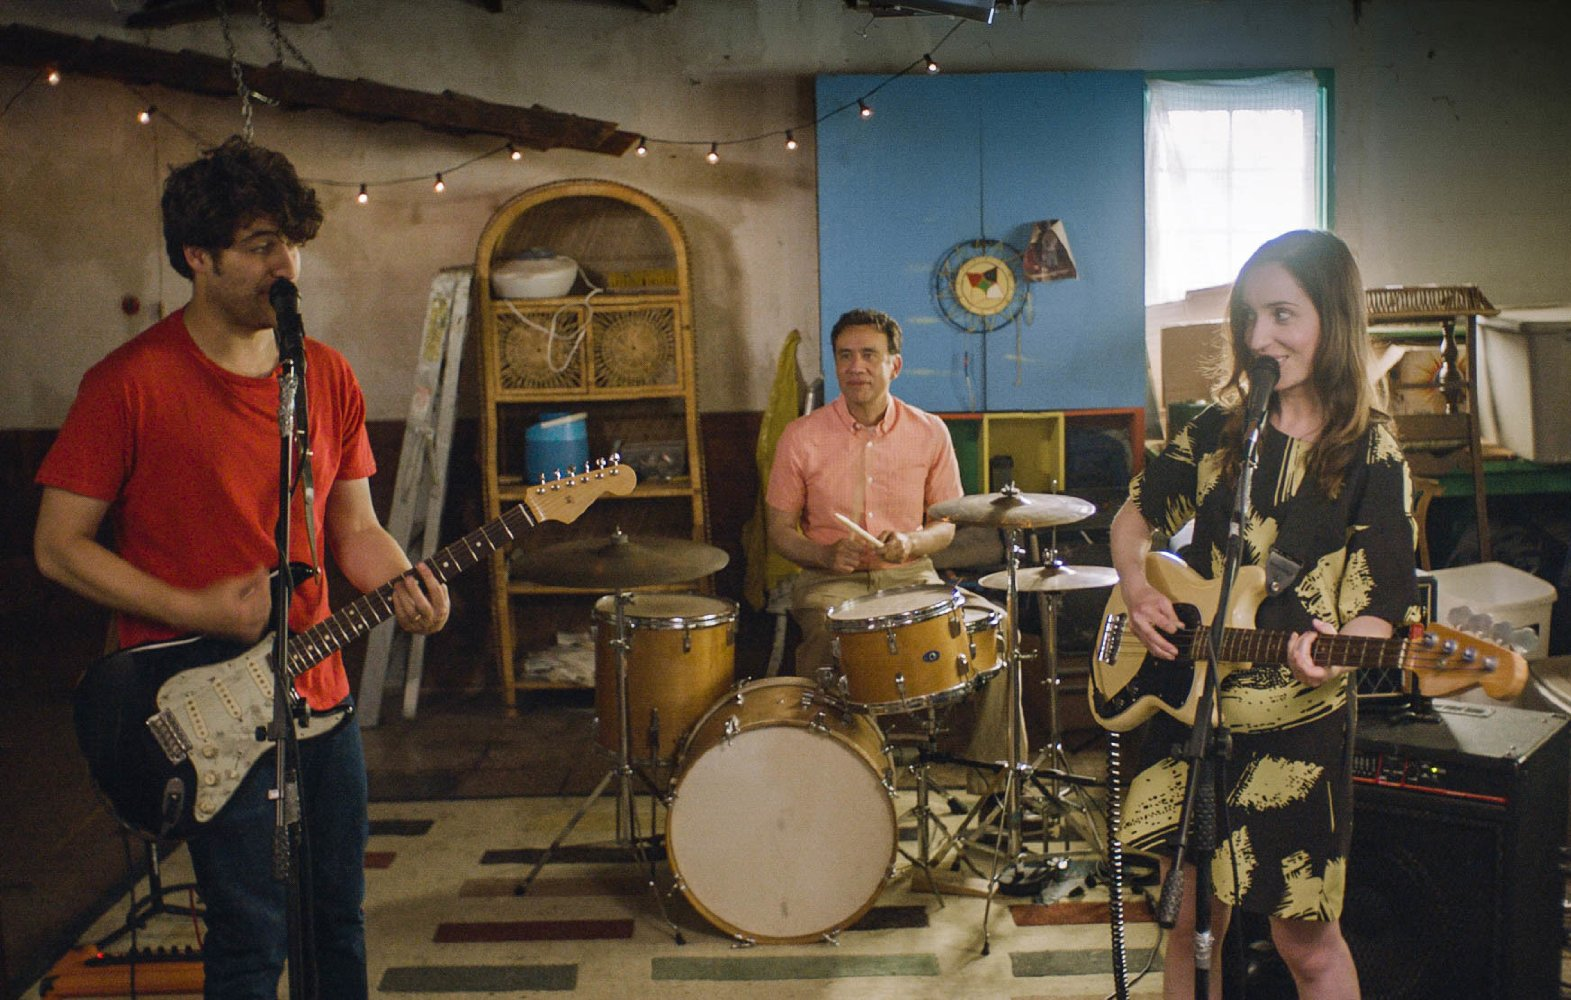 Adam Pally, Fred Armisen, and Zoe Lister-Jones start a band to save a marriage in BAND AID.